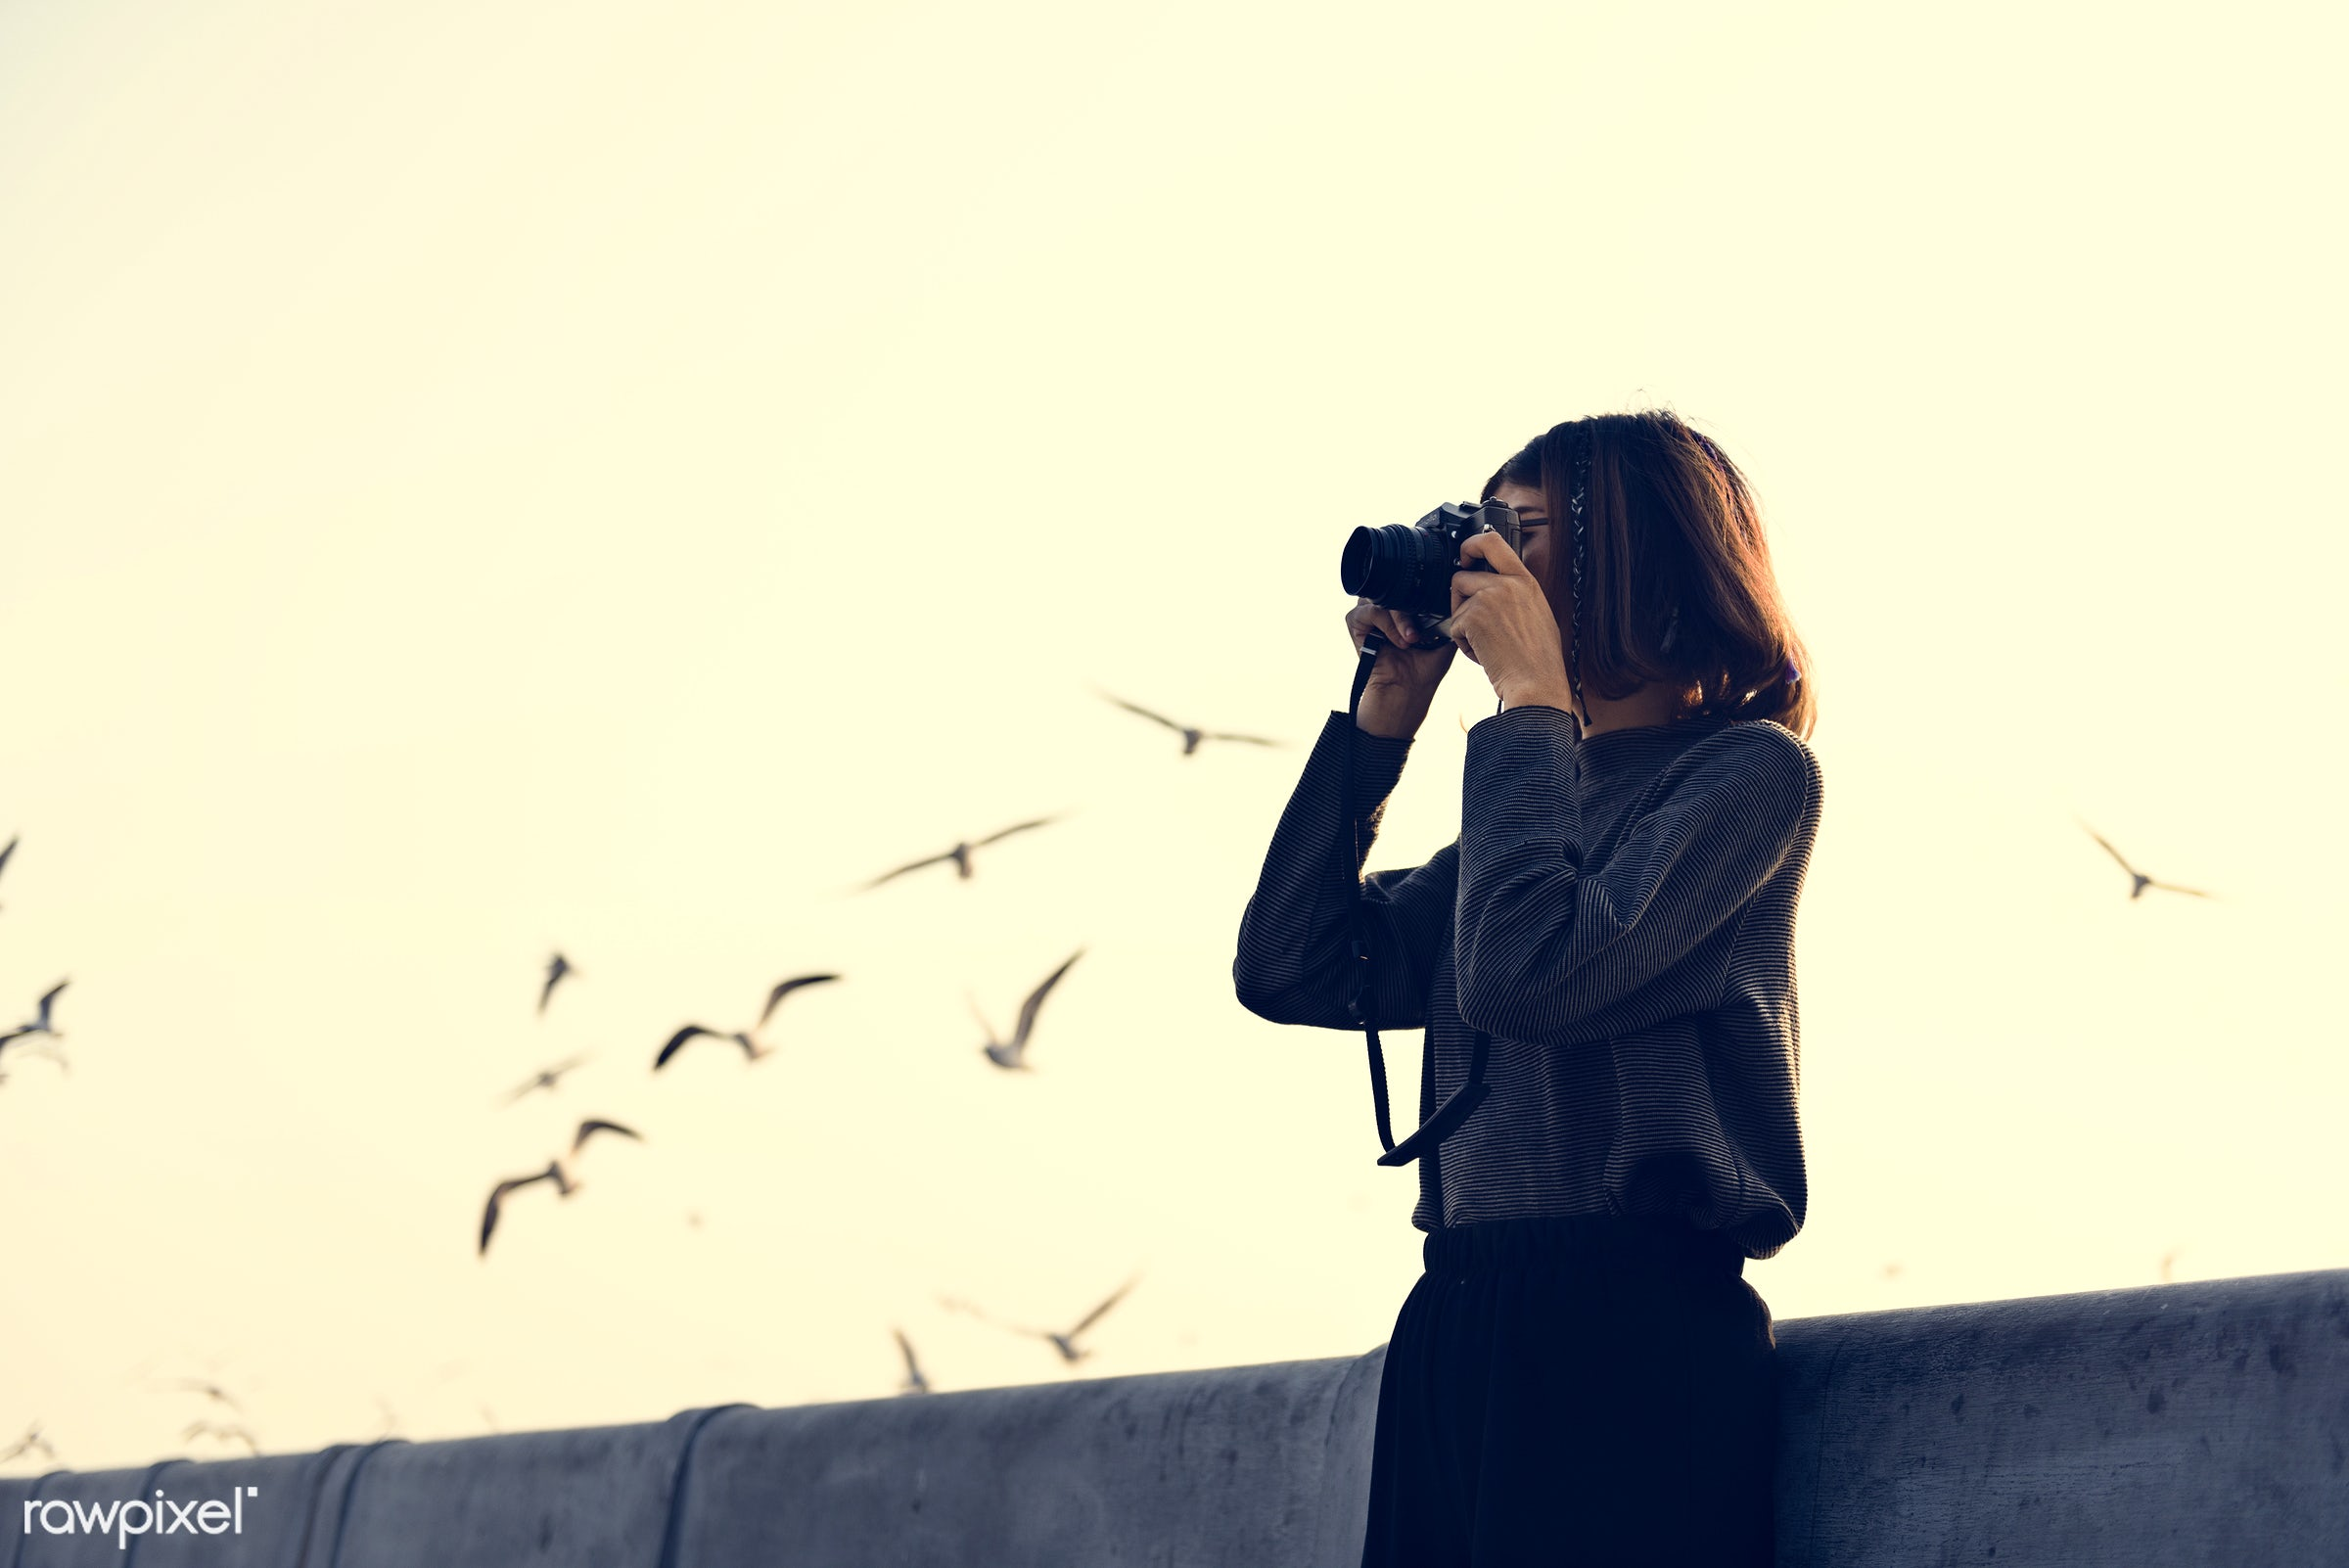 girl, woman, camera, photography, photographer, hobby, photo, picture, outdoors, sky, alone, bird, animal, leisure,...